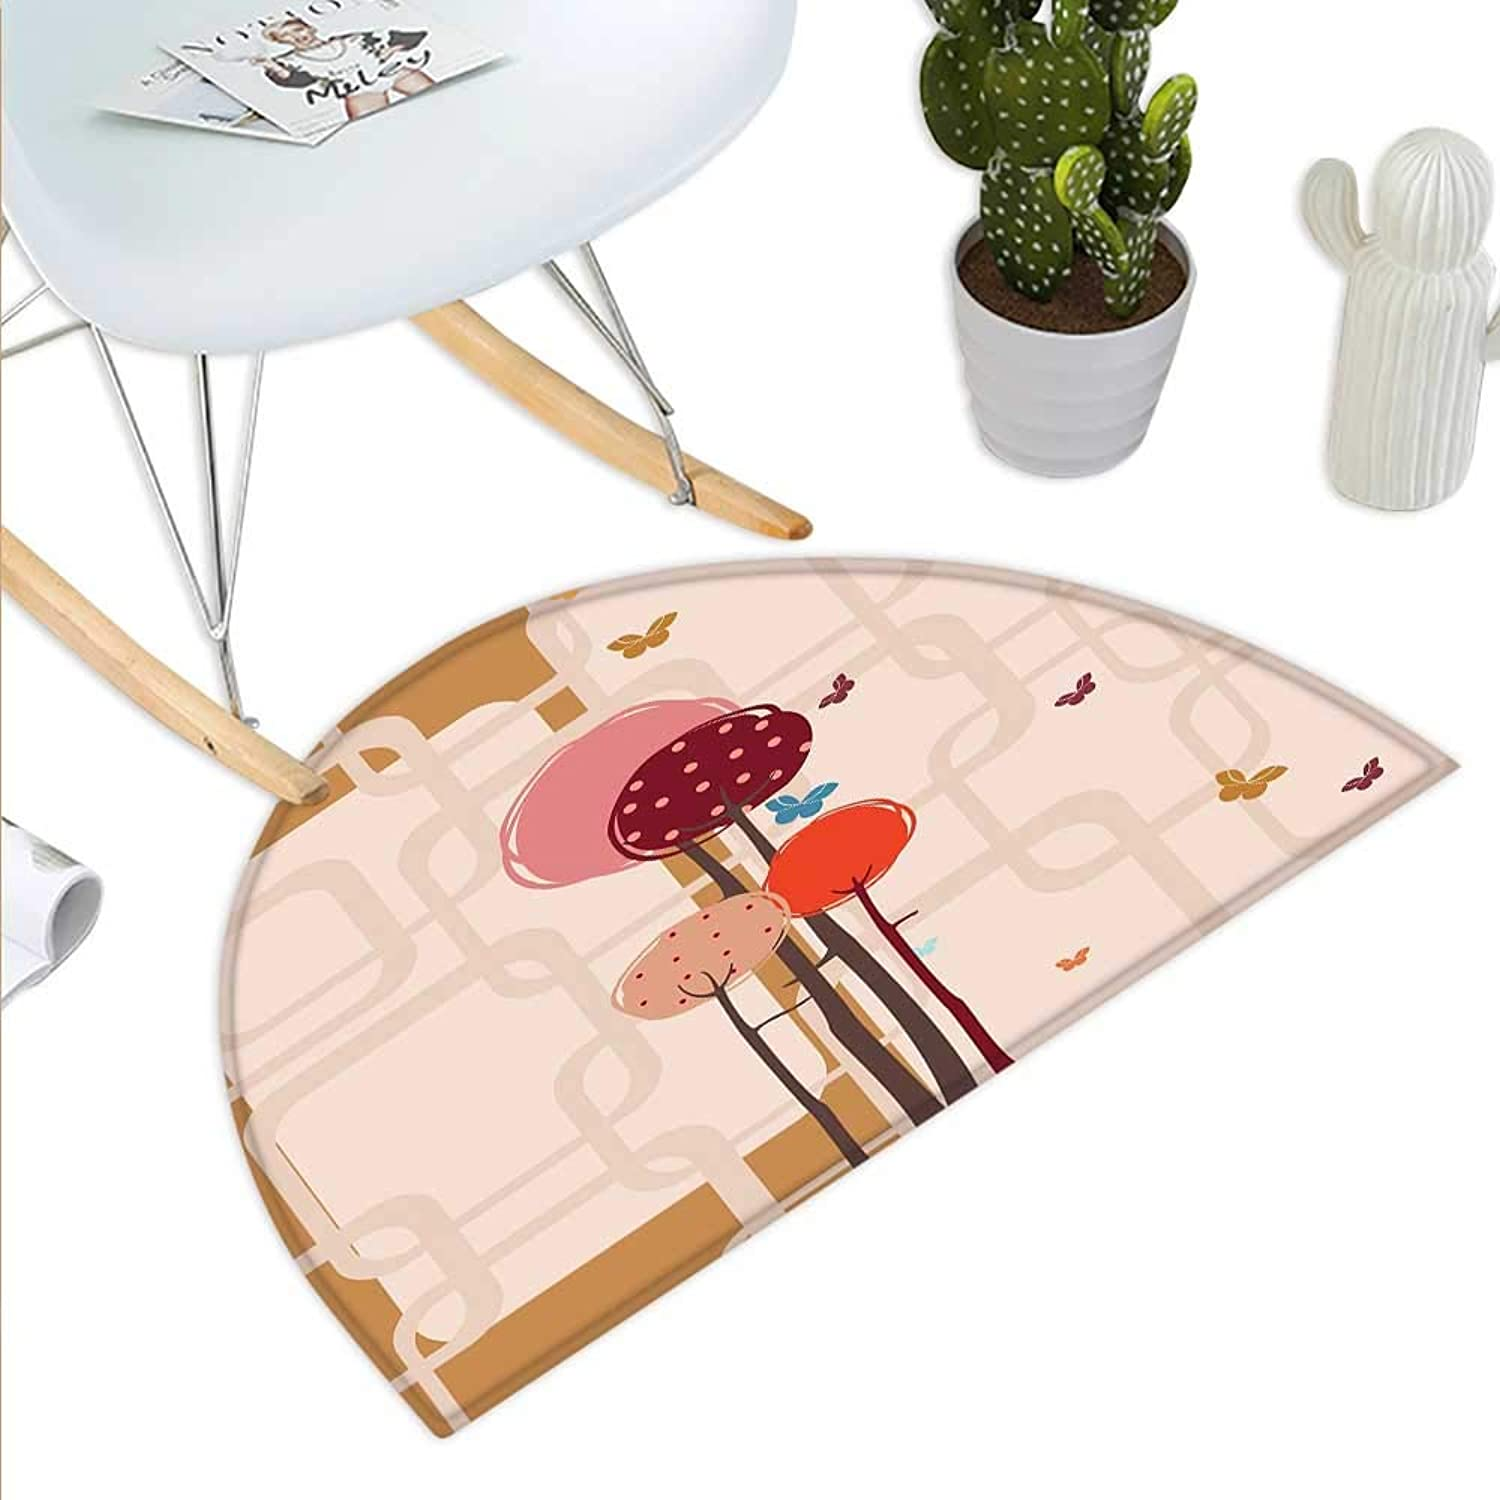 Retro Semicircle Doormat colorful Trees and Butterflies Round Edged Squares Funky Spring Halfmoon doormats H 35.4  xD 53.1  Ruby Dried pink Amber Scarlet